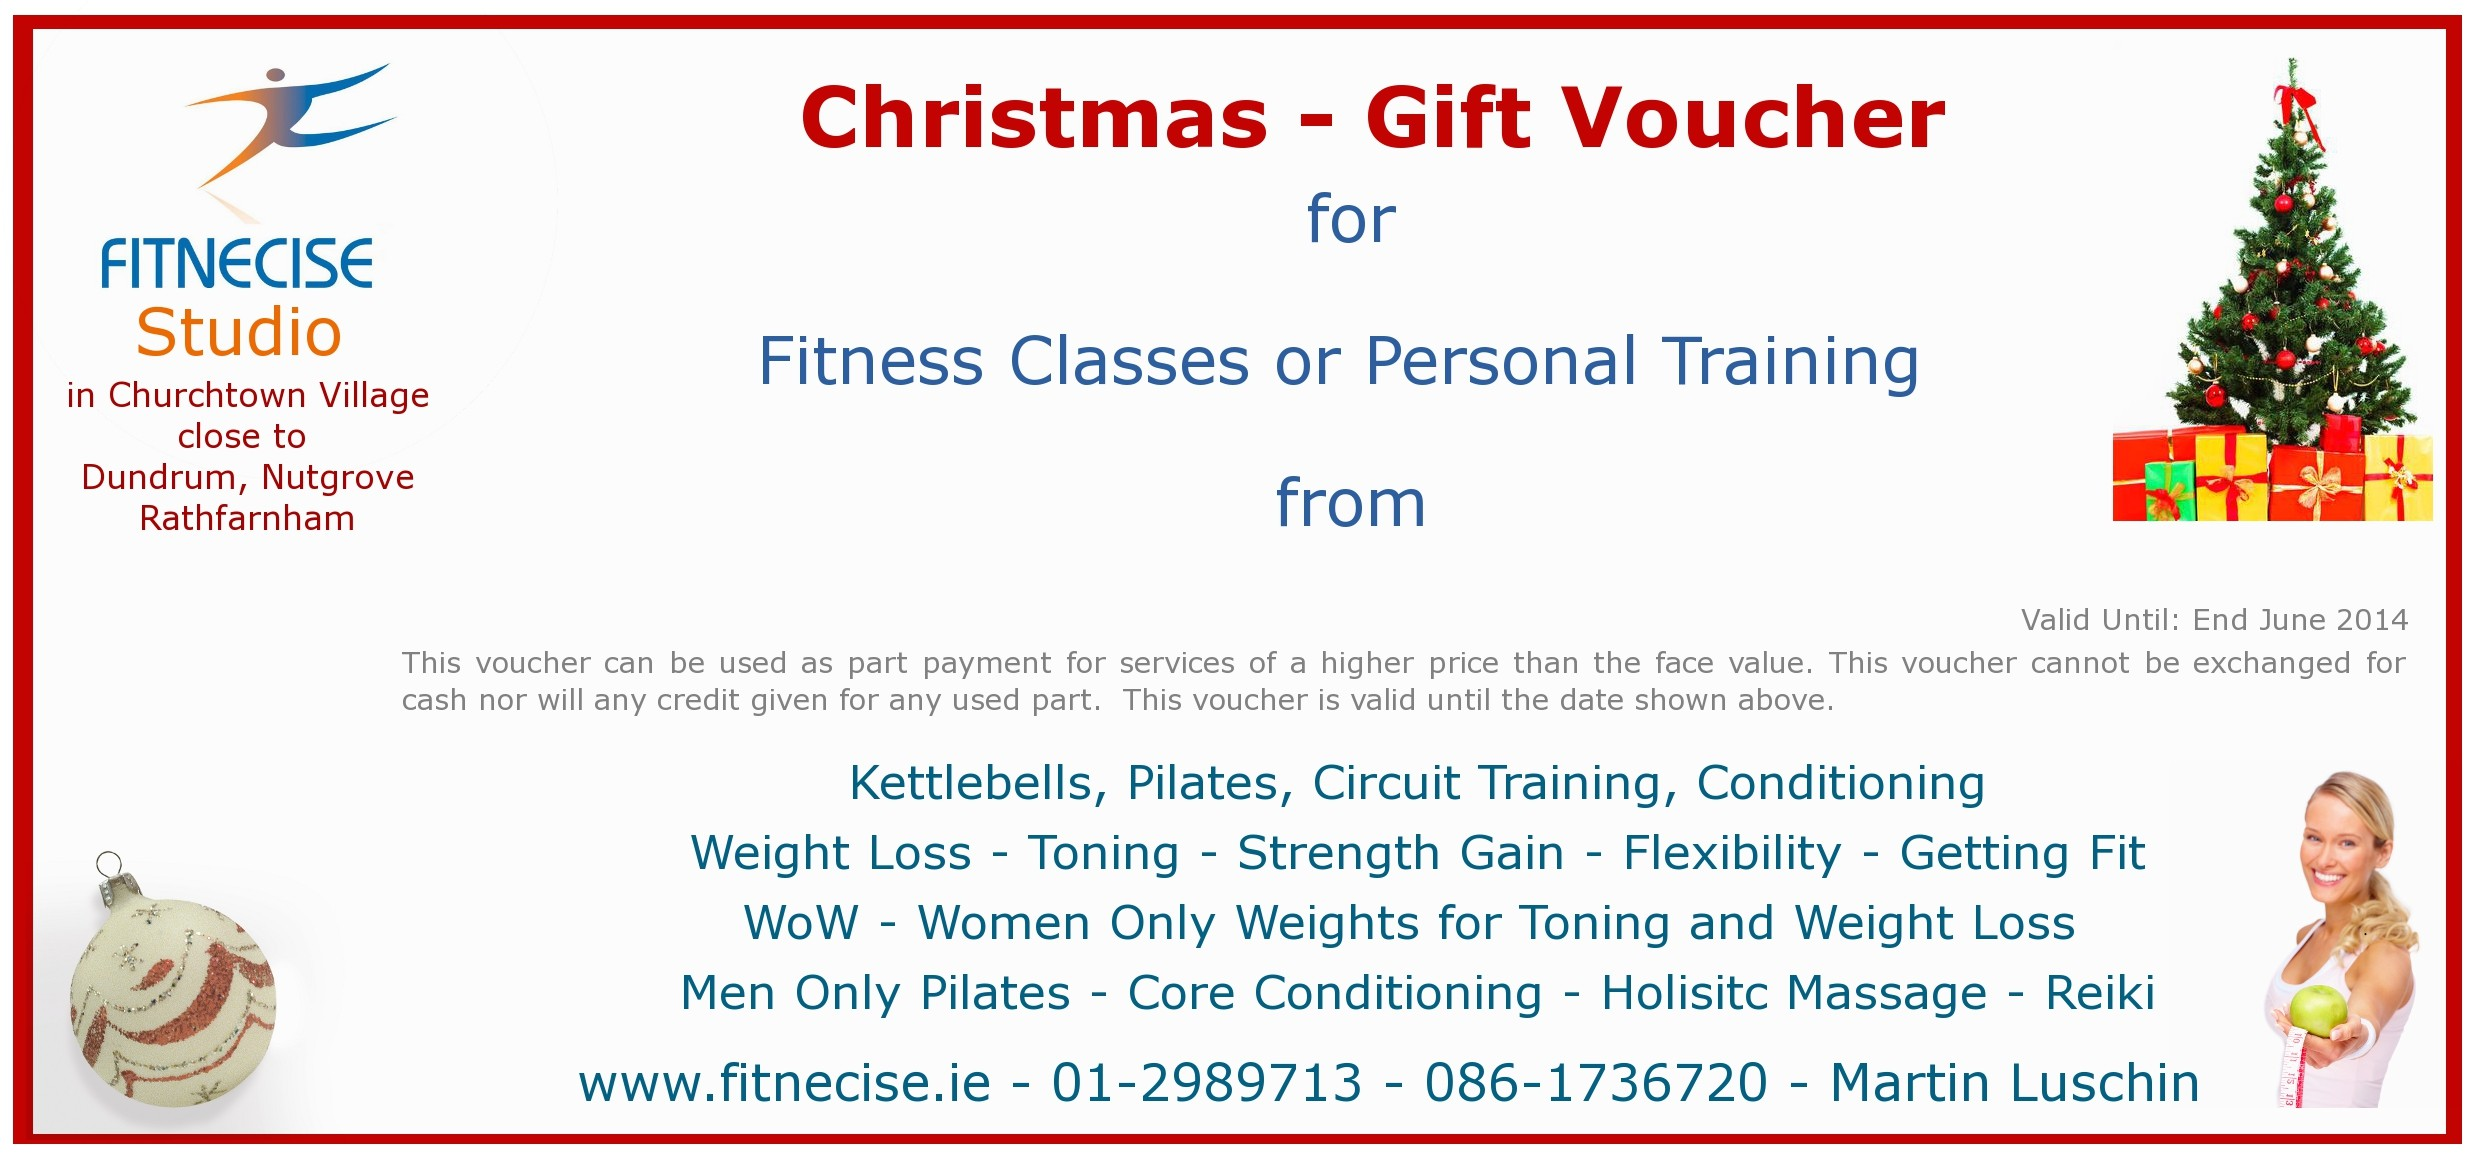 christmas gift vouchers available in south dublin churchtown close to dundrum d14 d16 fitness exercise classes personal training trainer